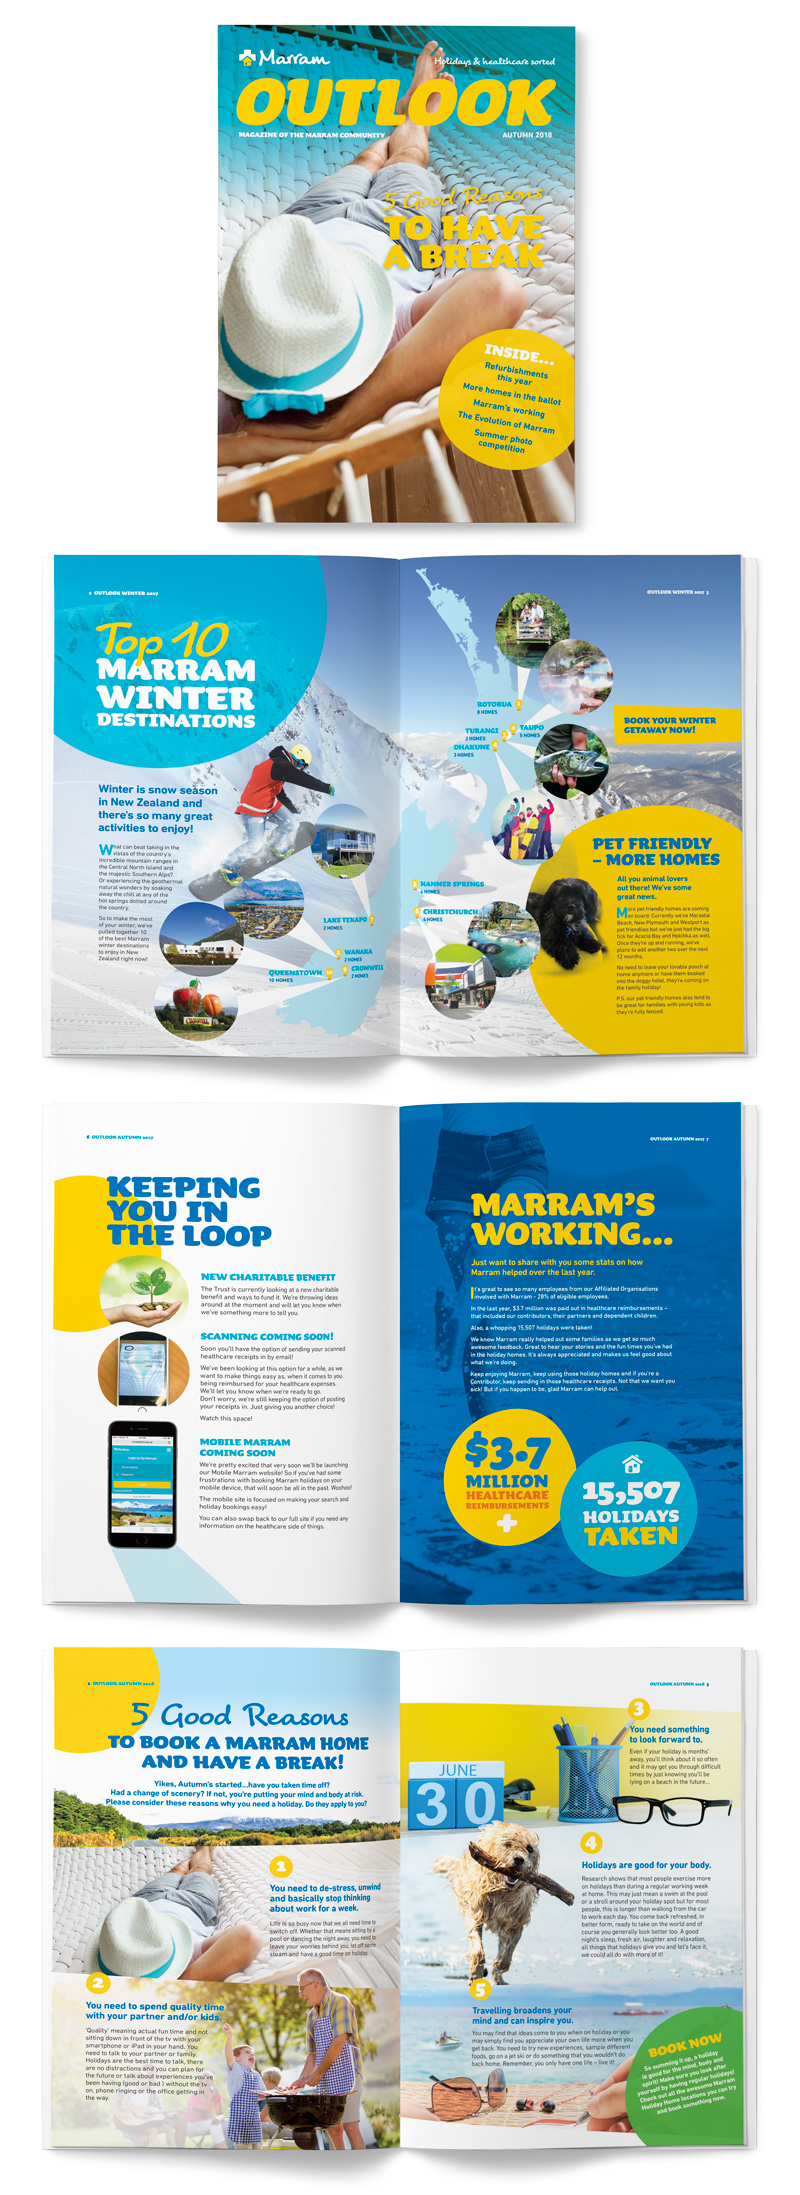 Marram case study magazine newsletter design